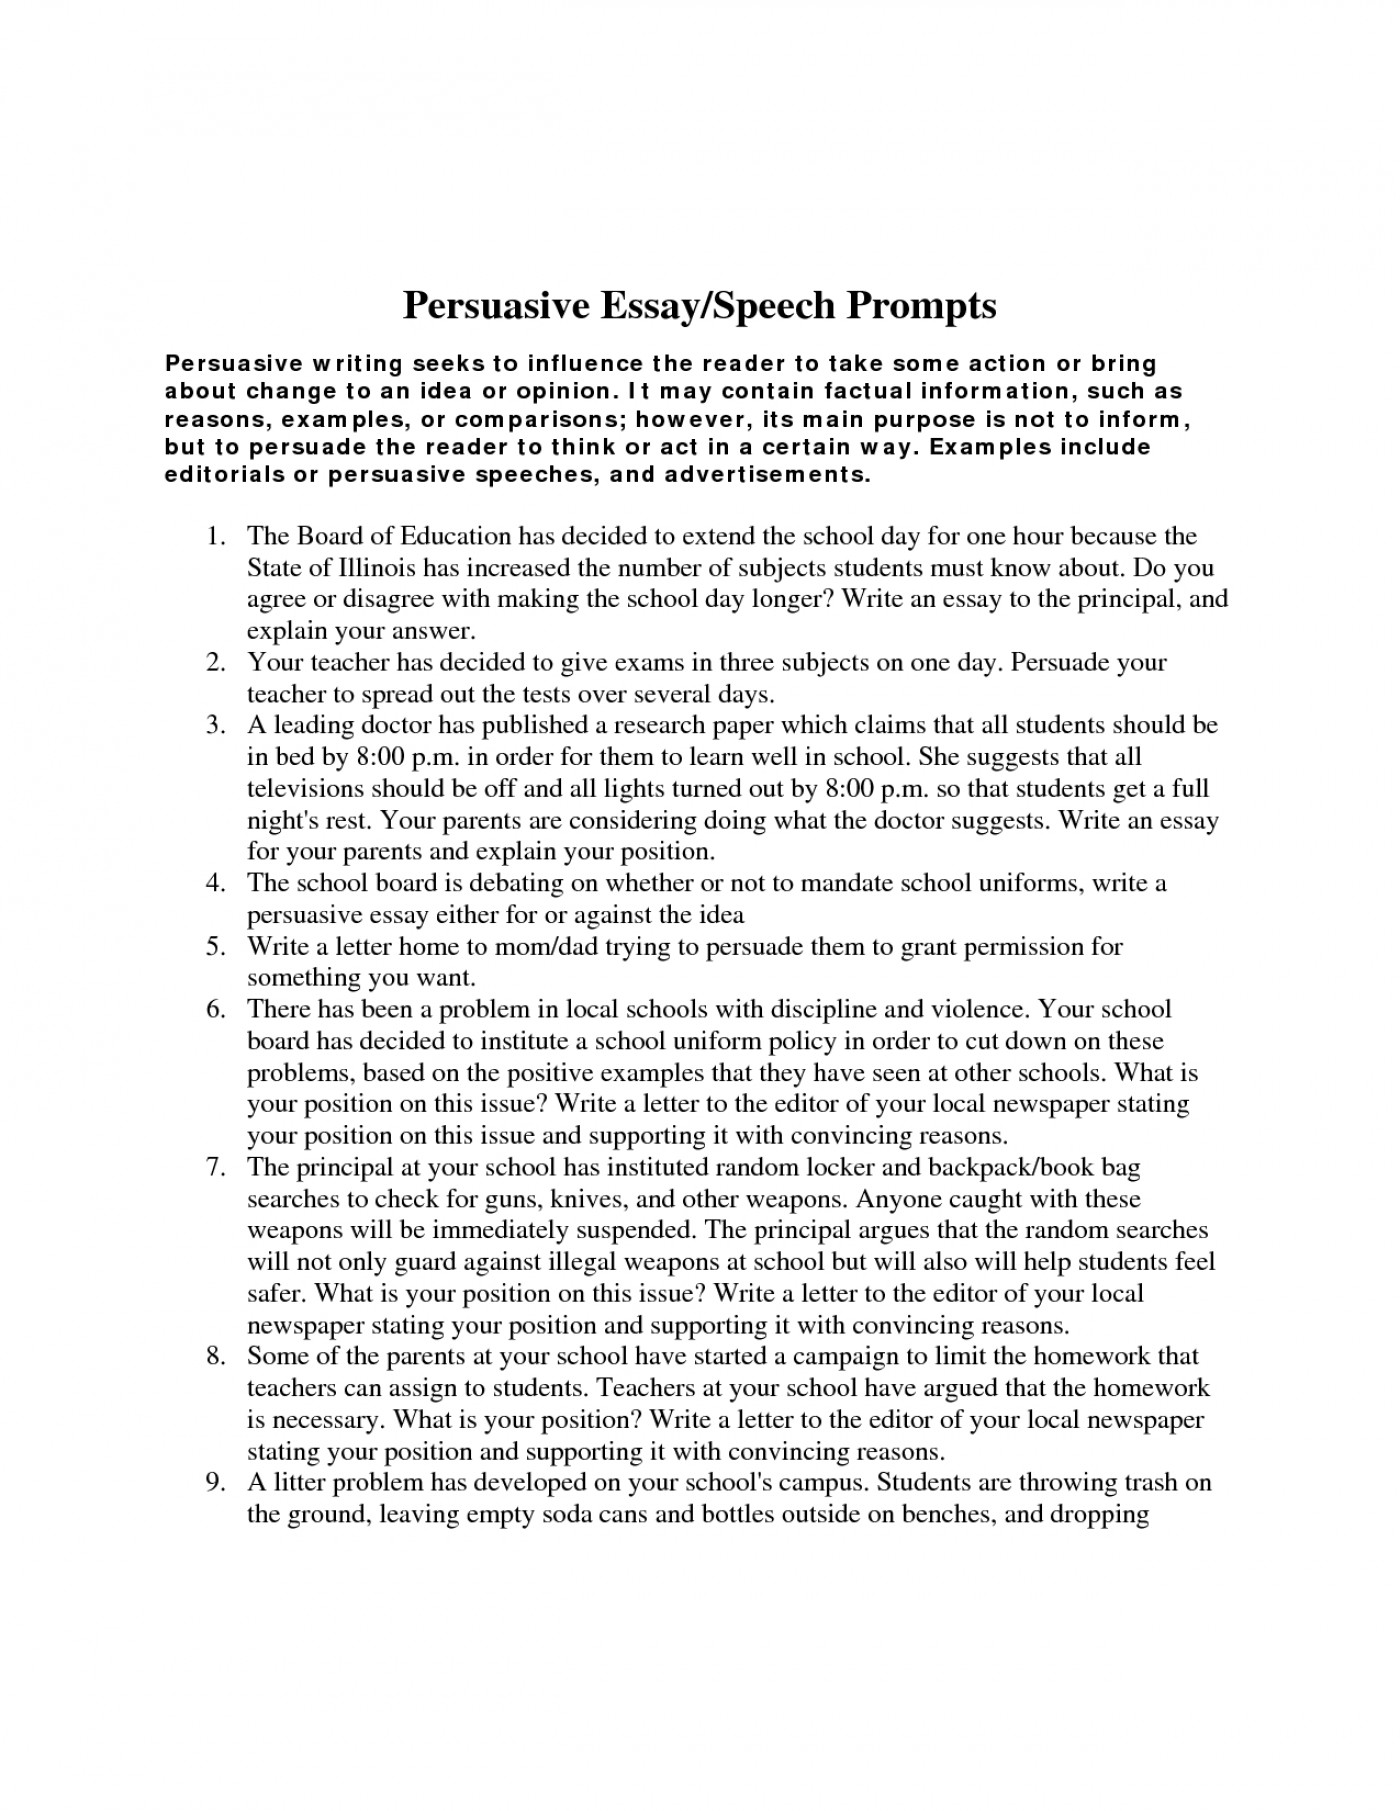 012 Essay Example Persuasive Prompts Informative Remarkable Topics For 4th Grade Expository High School 6th Graders 1400